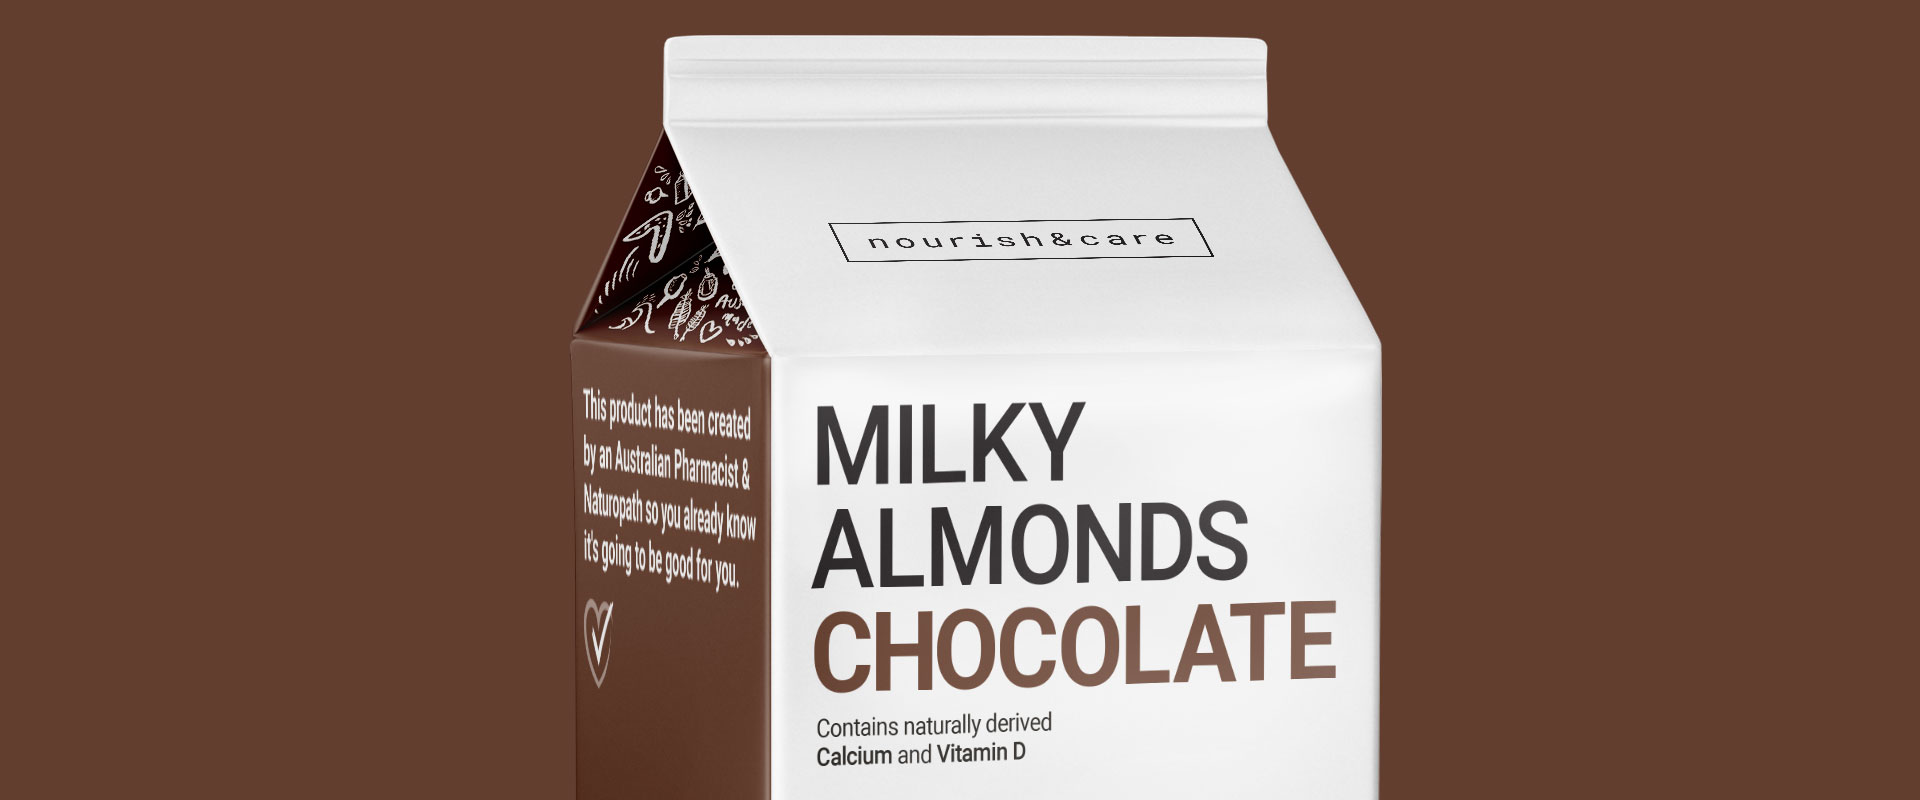 Milky Almonds Packaging Design